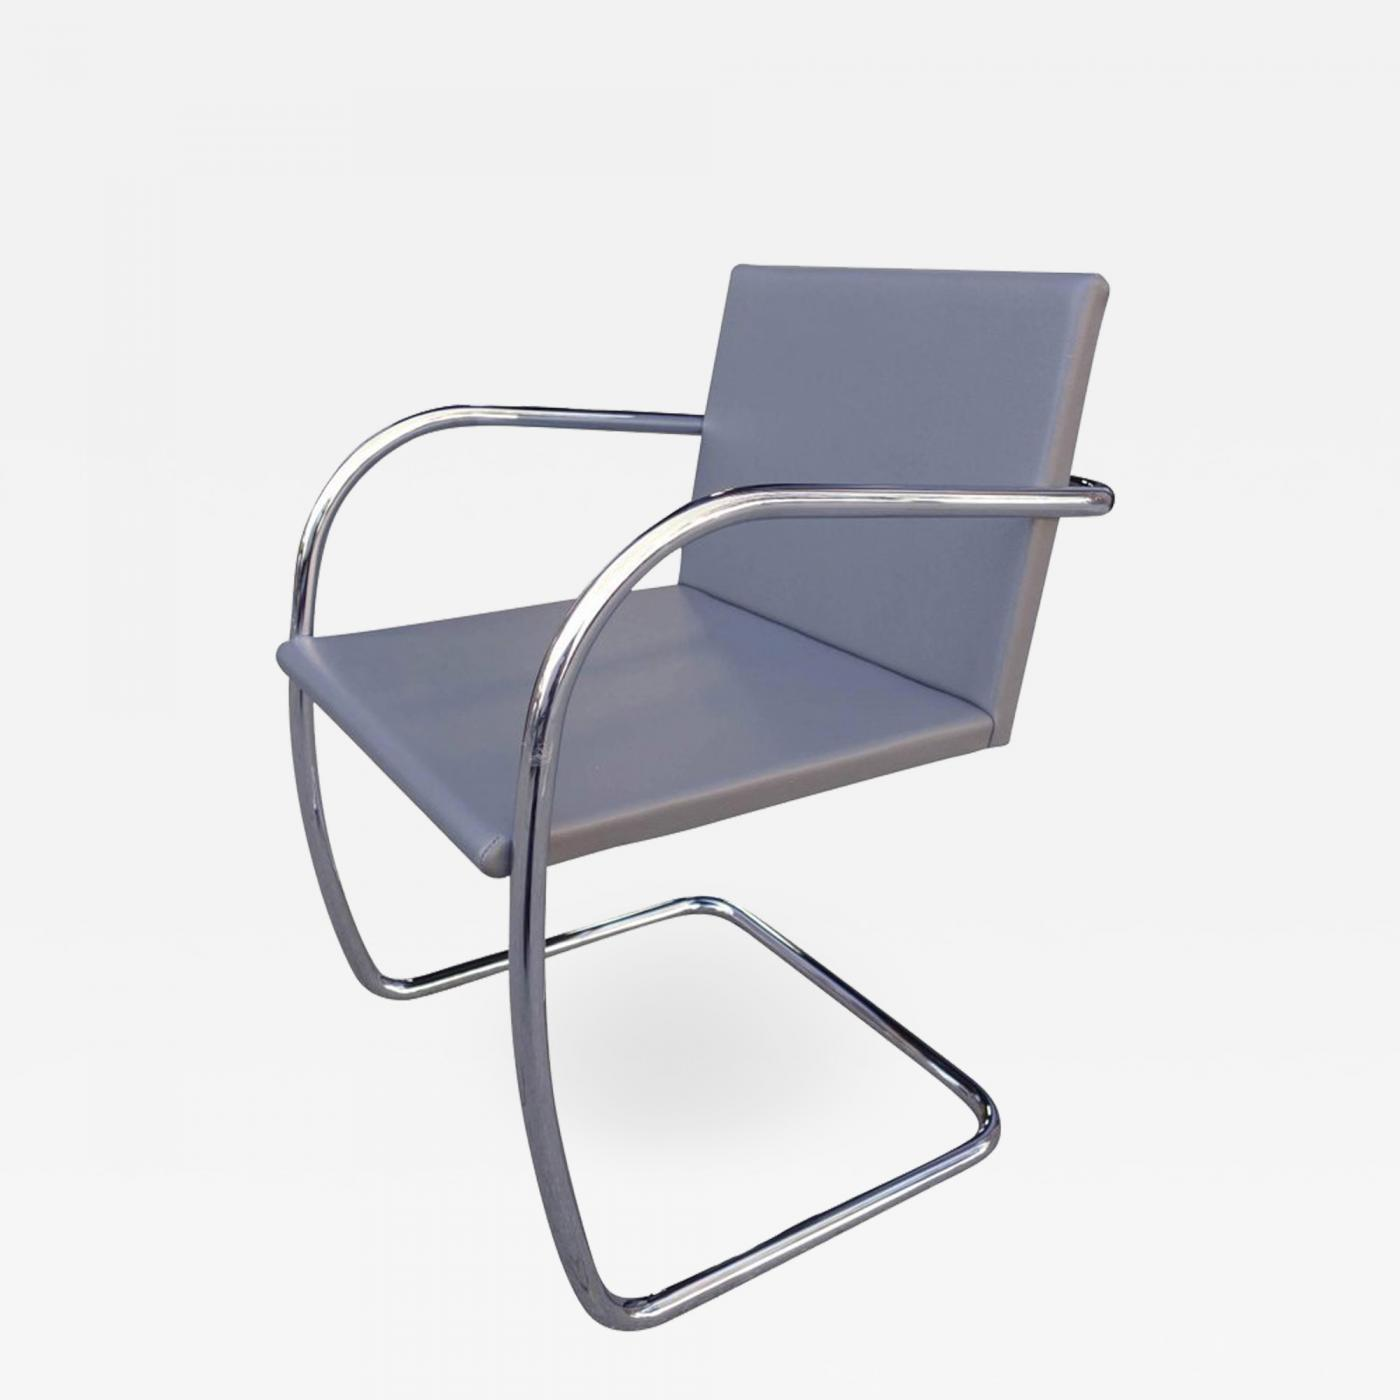 Ludwig Mies Van Der Rohe Midcentury Brno Chairs In Leather By